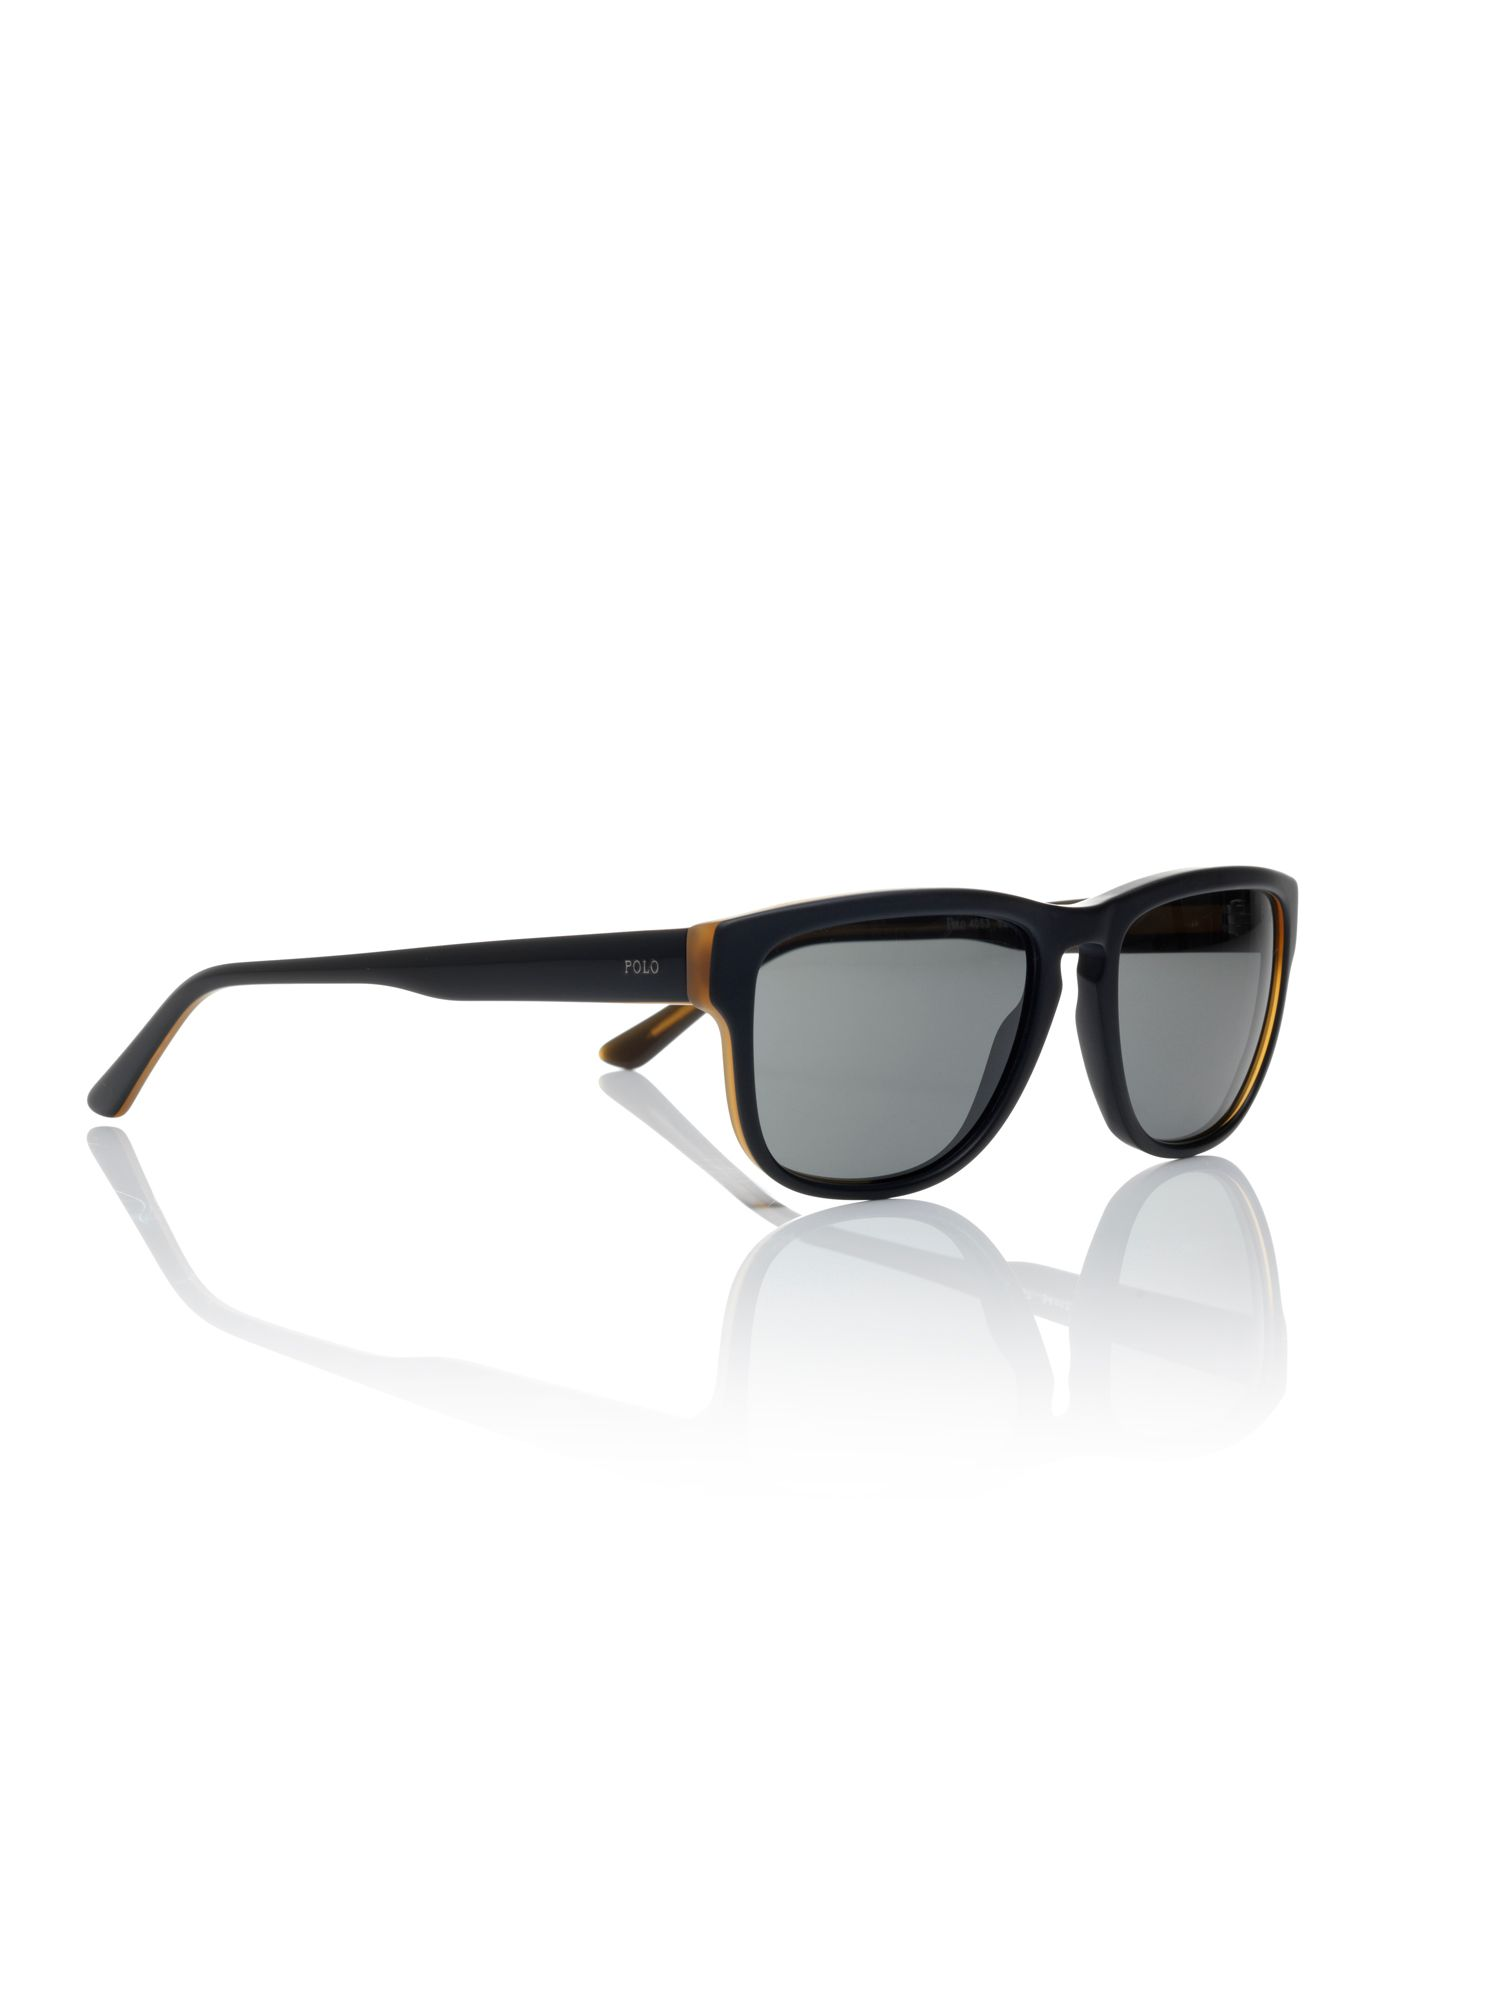 Mens square sunglasses